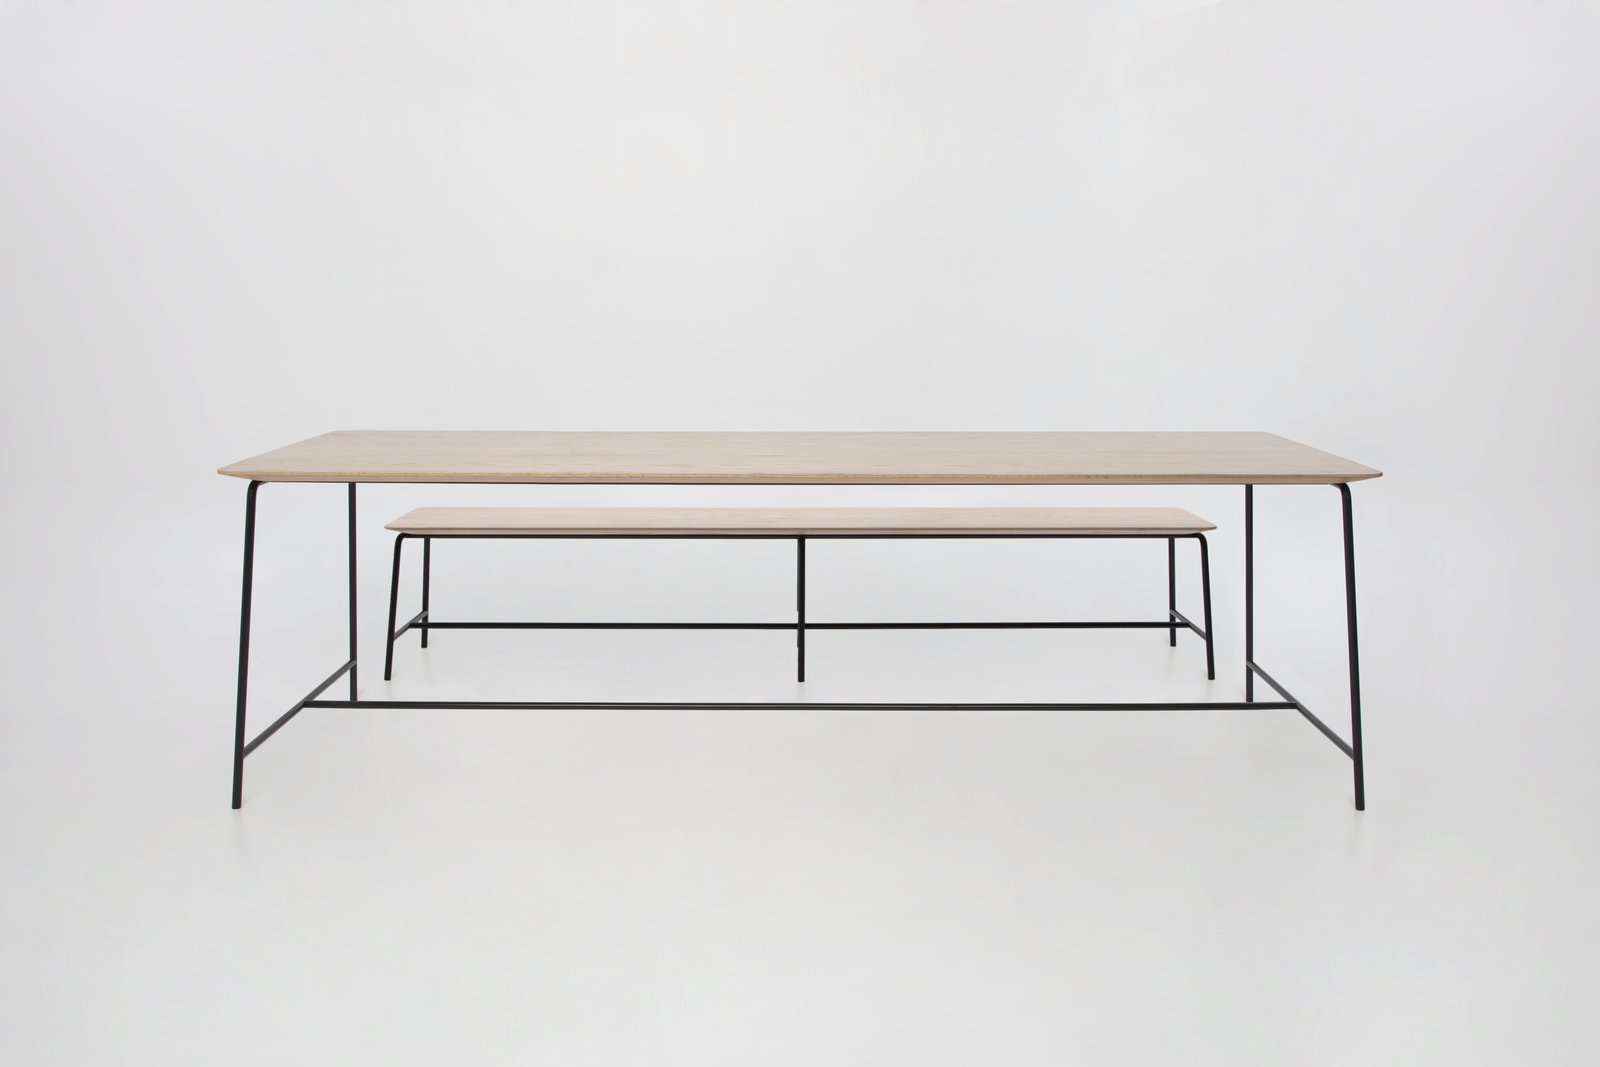 Dining Room, Bench, and Table Dinning Table T01 and bench B01  by Foraine  Saint-Laurent Apartment by Atelier Barda